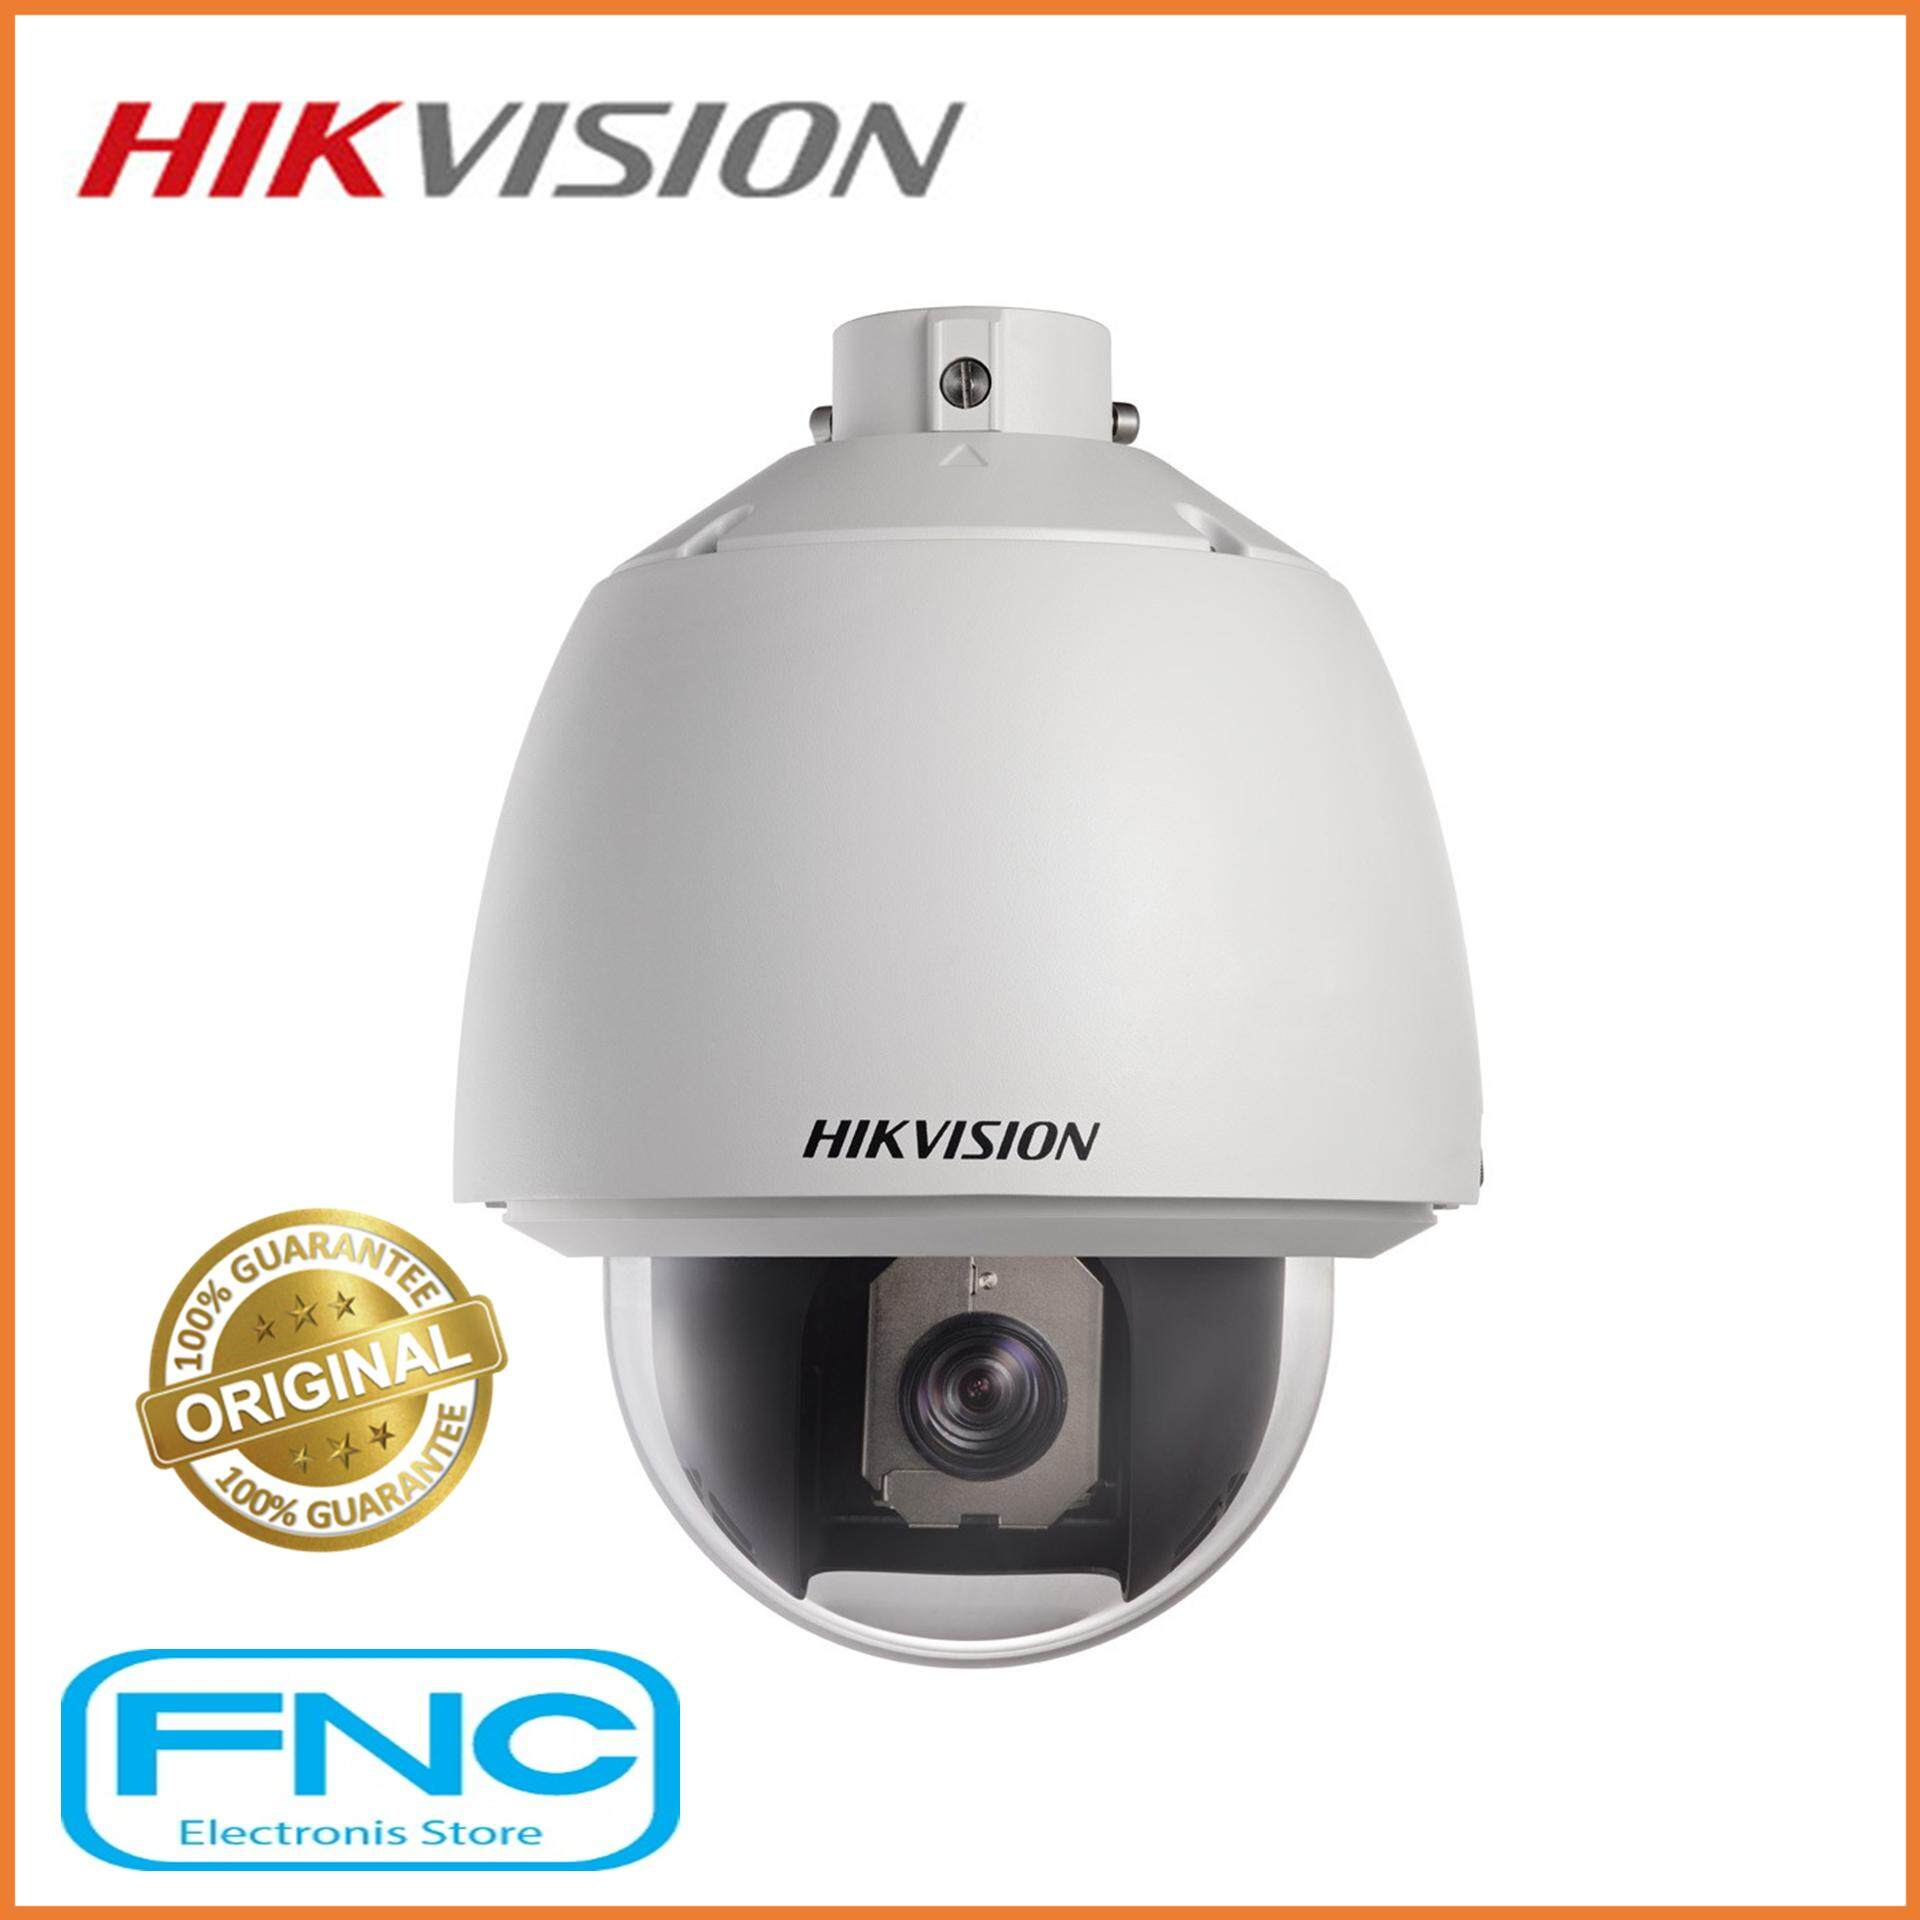 Hikvision Ds-2ae5037-A Analog 700tvl 37x Zoom Ptz Dome Camera By Fnc Electronics Store.